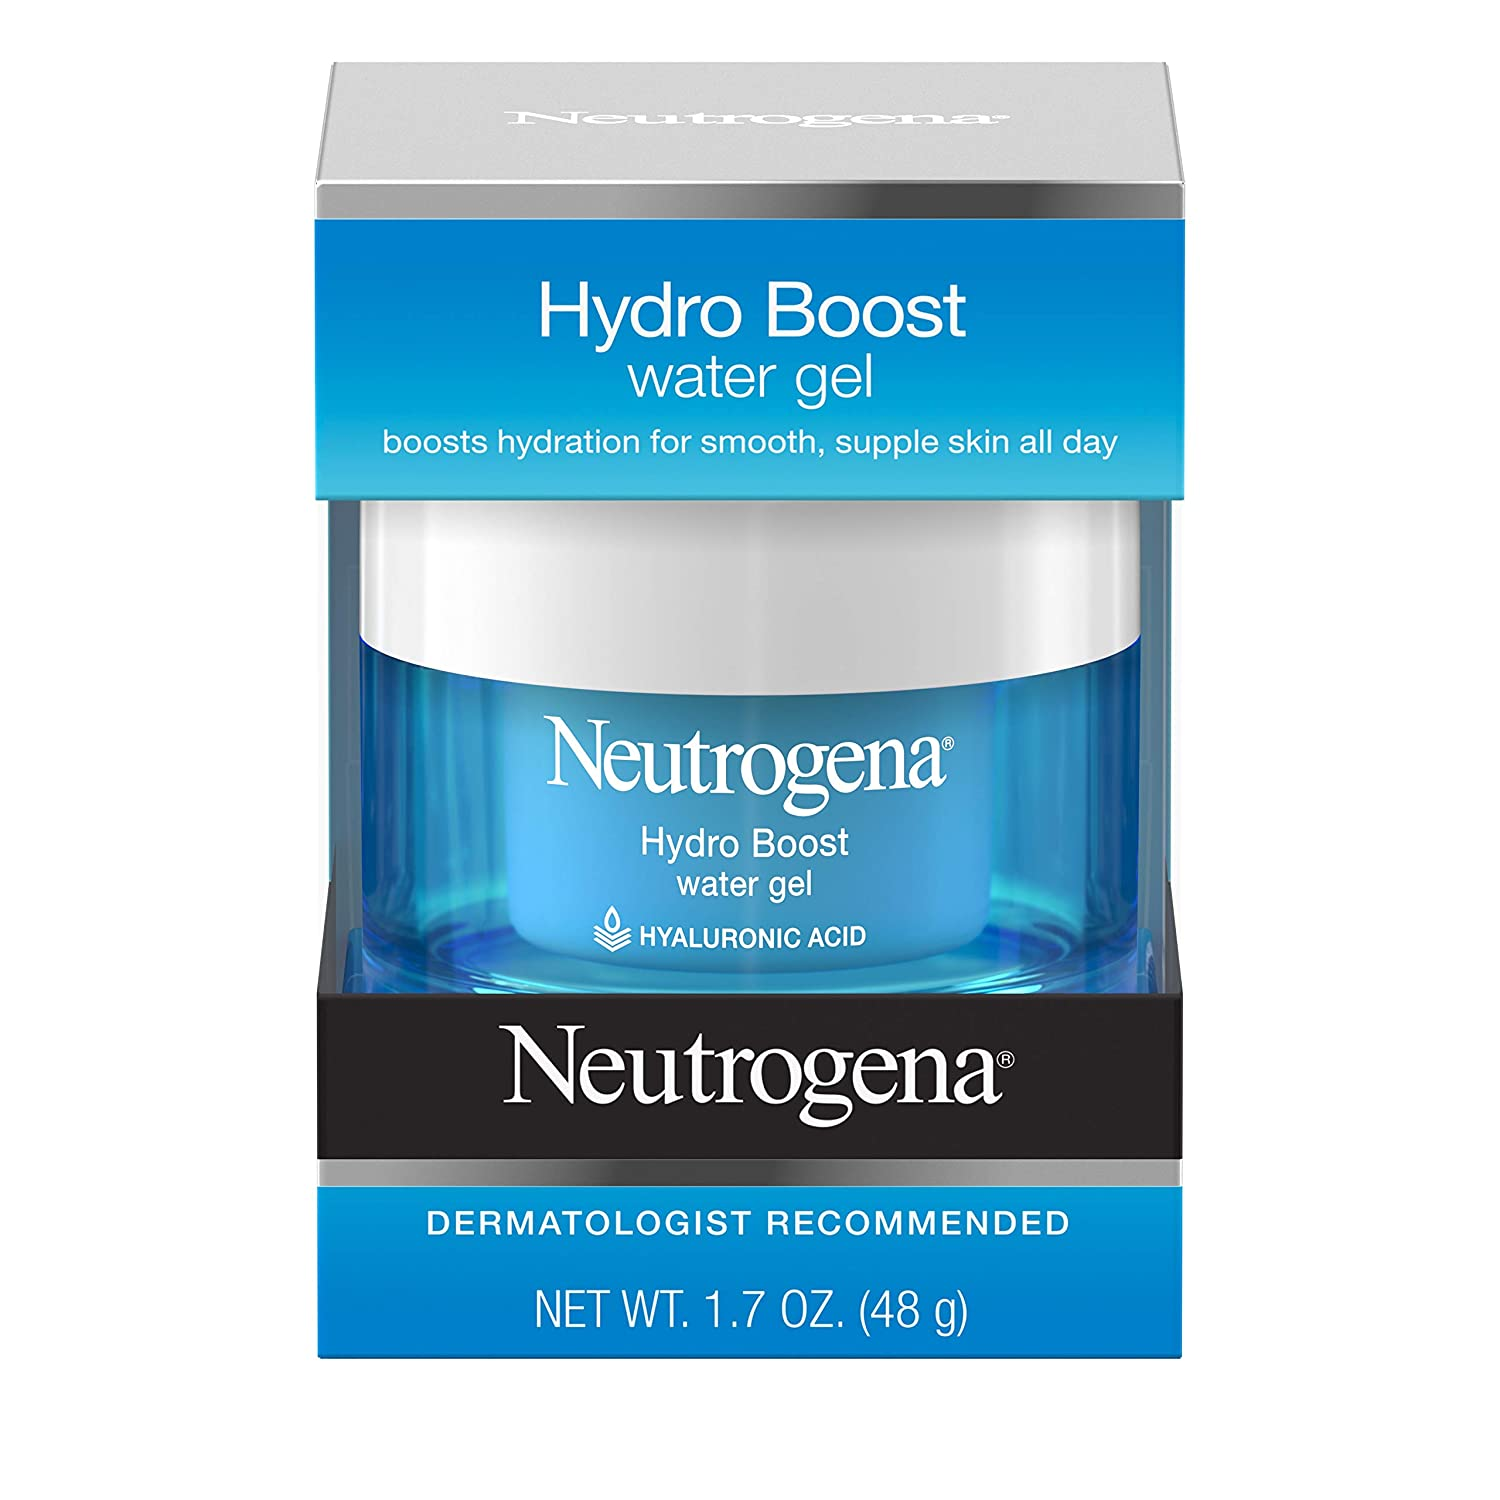 Neutrogena Hydro Boost Hyaluronic Acid Hydrating Water Face Gel Moisturizer for Dry Skin, 1.7 fl. oz (Pack of 2)